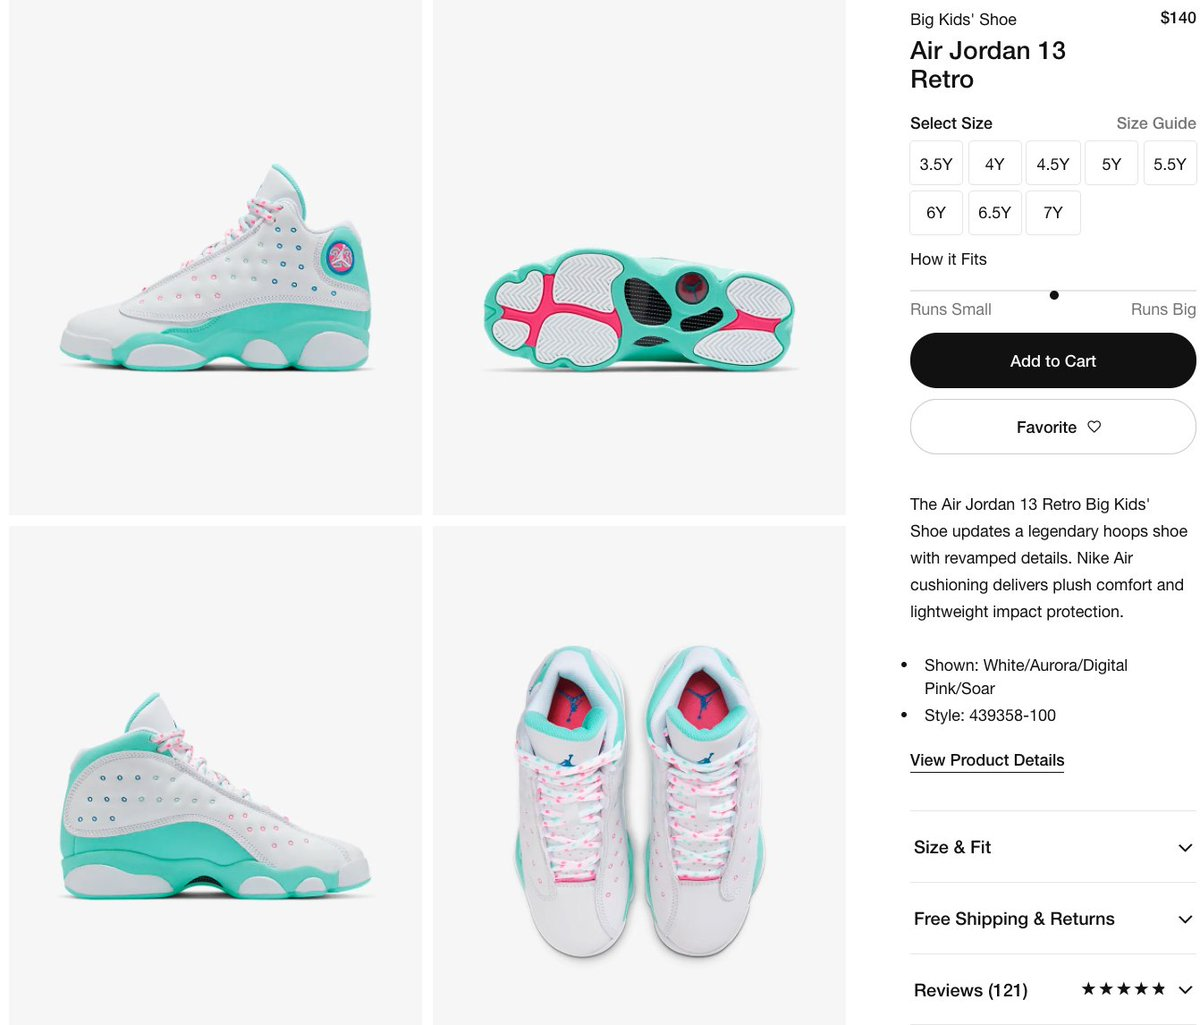 Sole Links On Twitter Ad Ad Live Via Nike Us Gs Air Jordan 13 Retro Aurora Green Https T Co Lcadmgeuvk Https T Co Lcadmgeuvk Https T Co Lcadmgeuvk Sold Out Everywhere Https T Co 79llmfwwbj